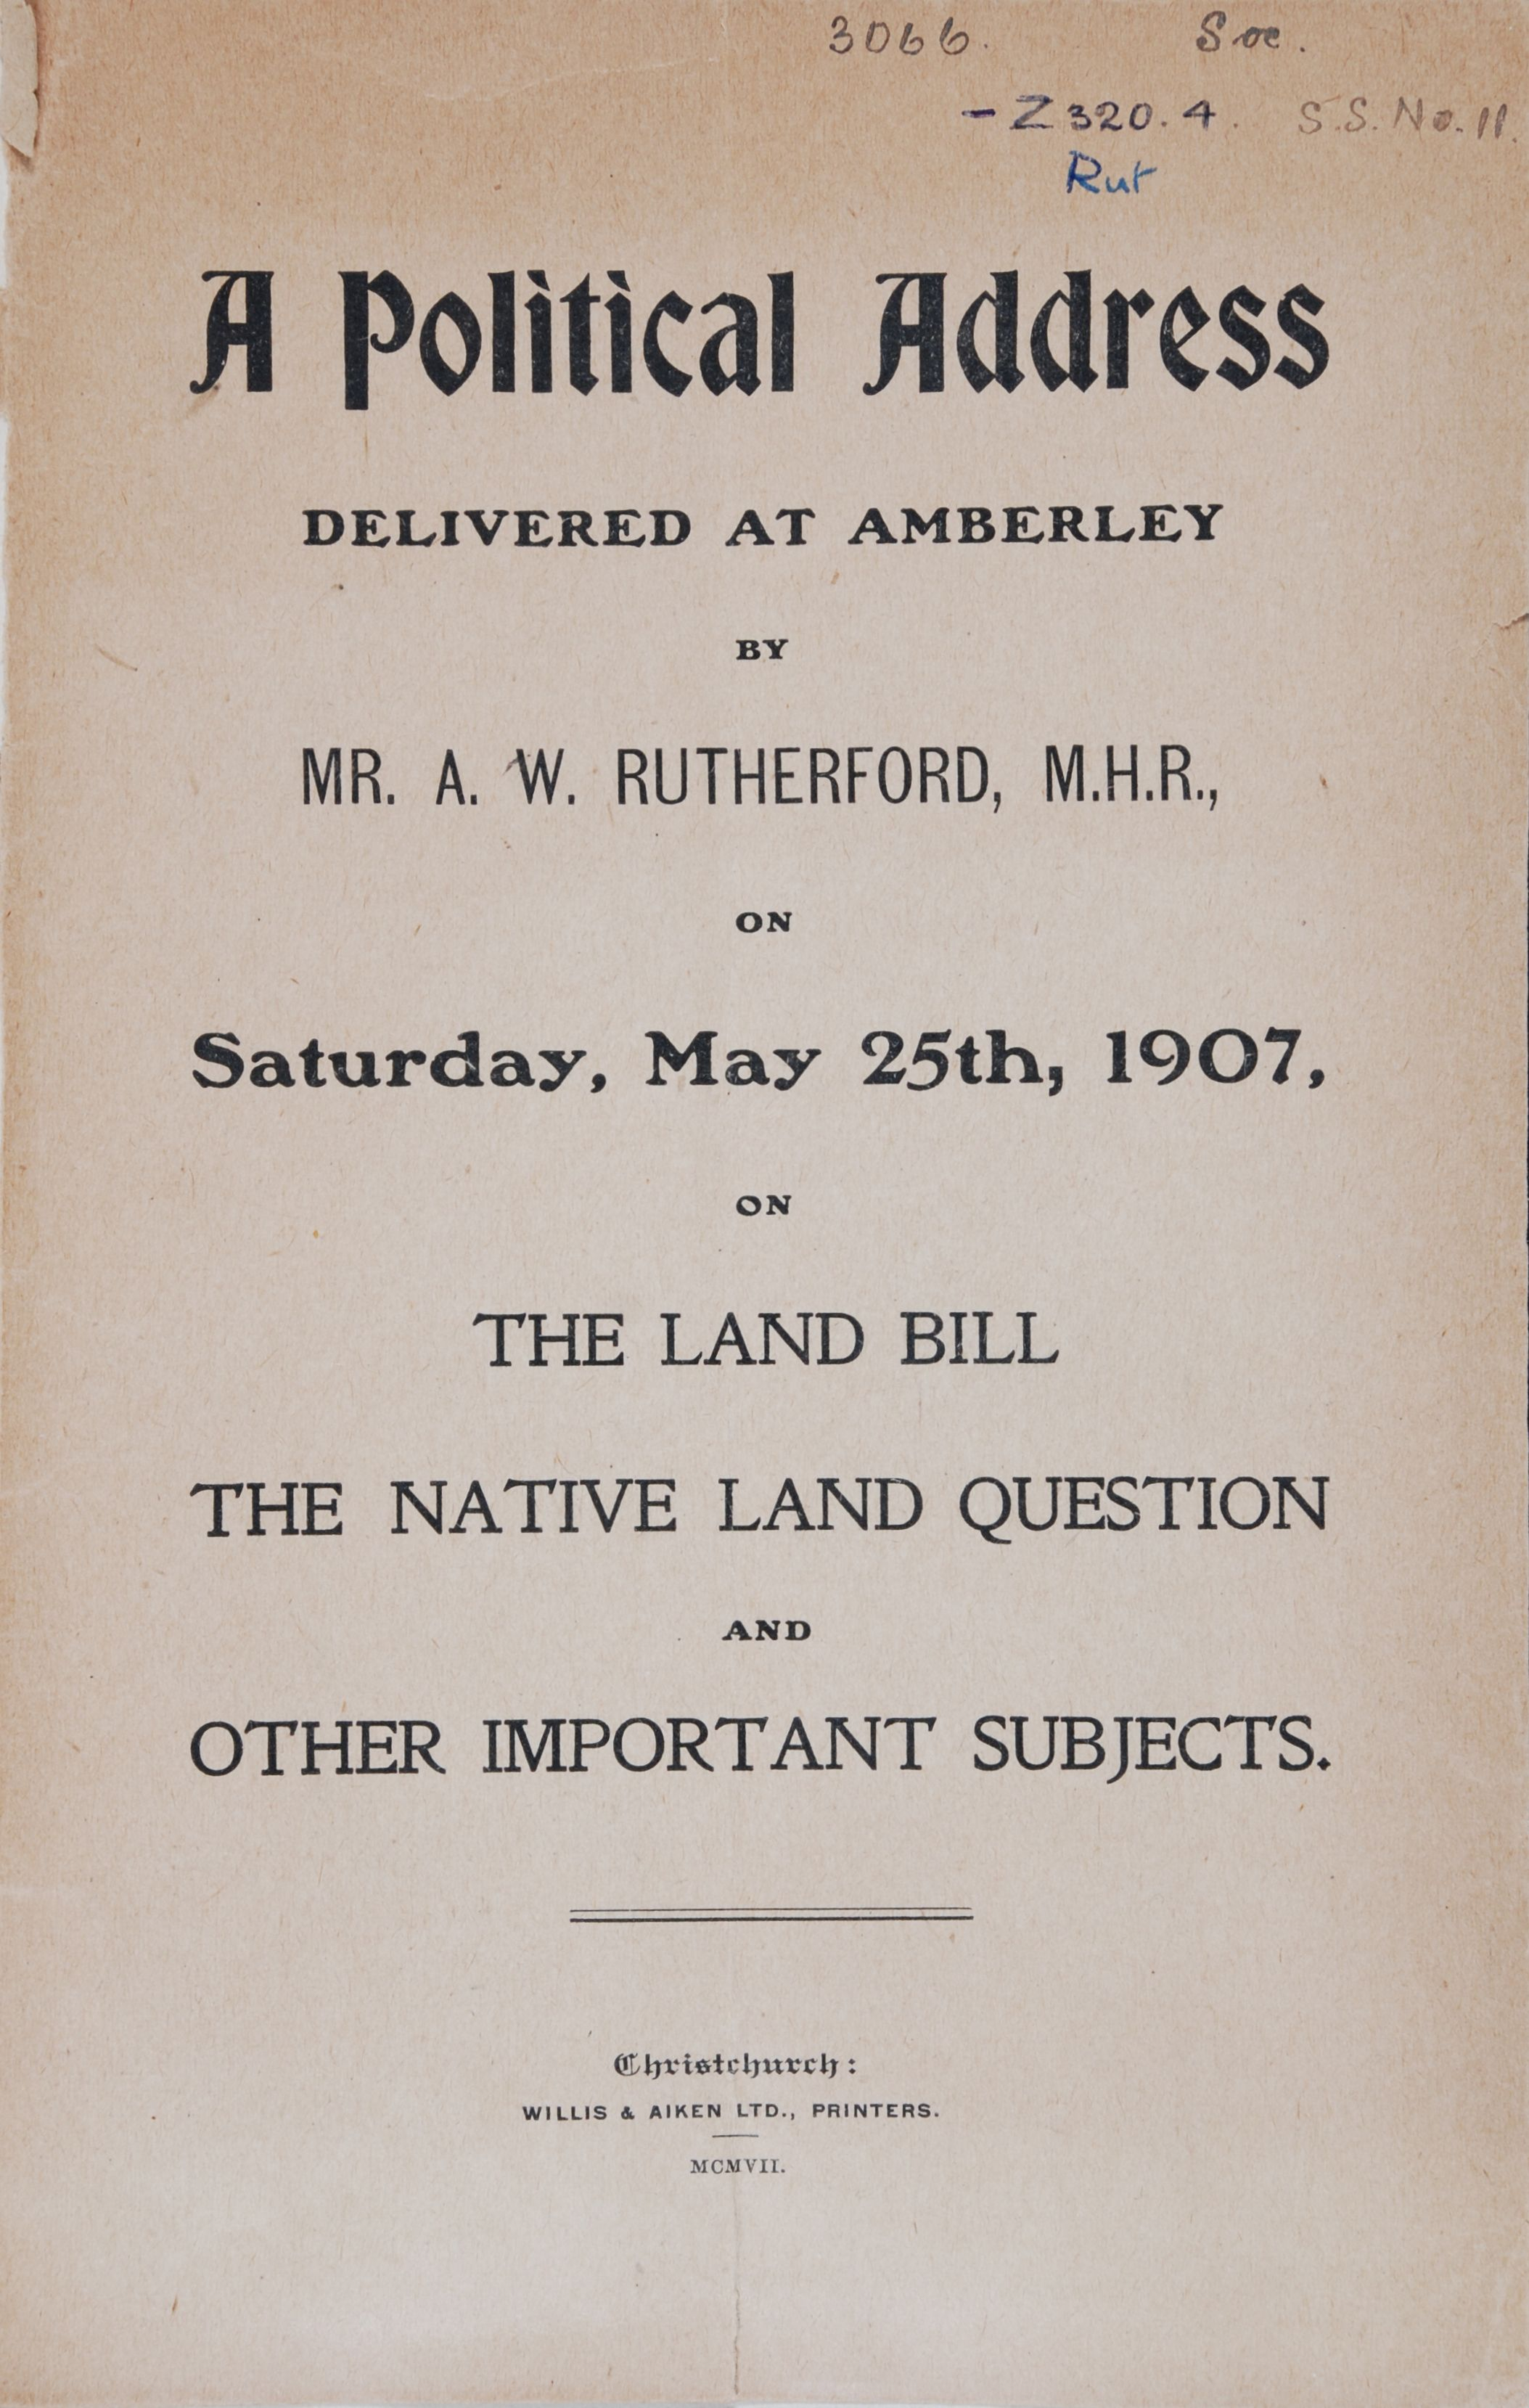 Andrew William Rutherford. A Political Address Delivered at Amberley by Mr. A. W. Rutherford M.H.R. on Saturday, May 25th, 1907, on the Land Bill, the Native Land Question and Other Important Subjects.  Christchurch: Willis & Aiken, Printers, 1907.